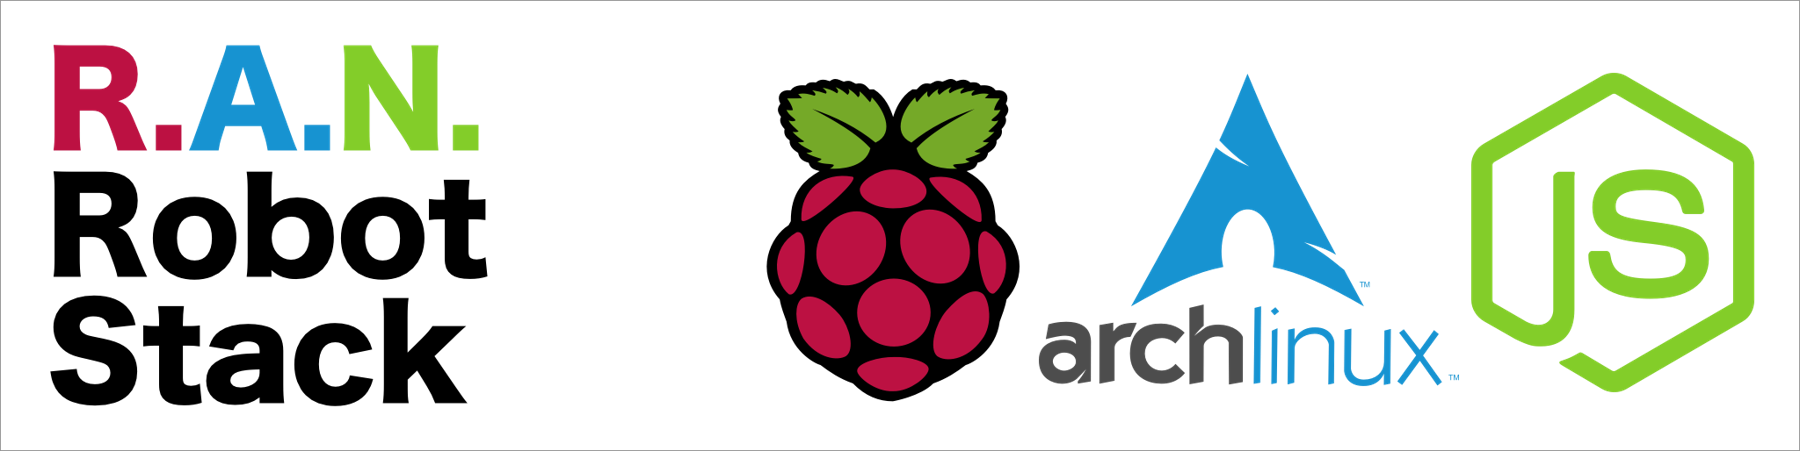 Google Vision API using Raspberry Pi and Node